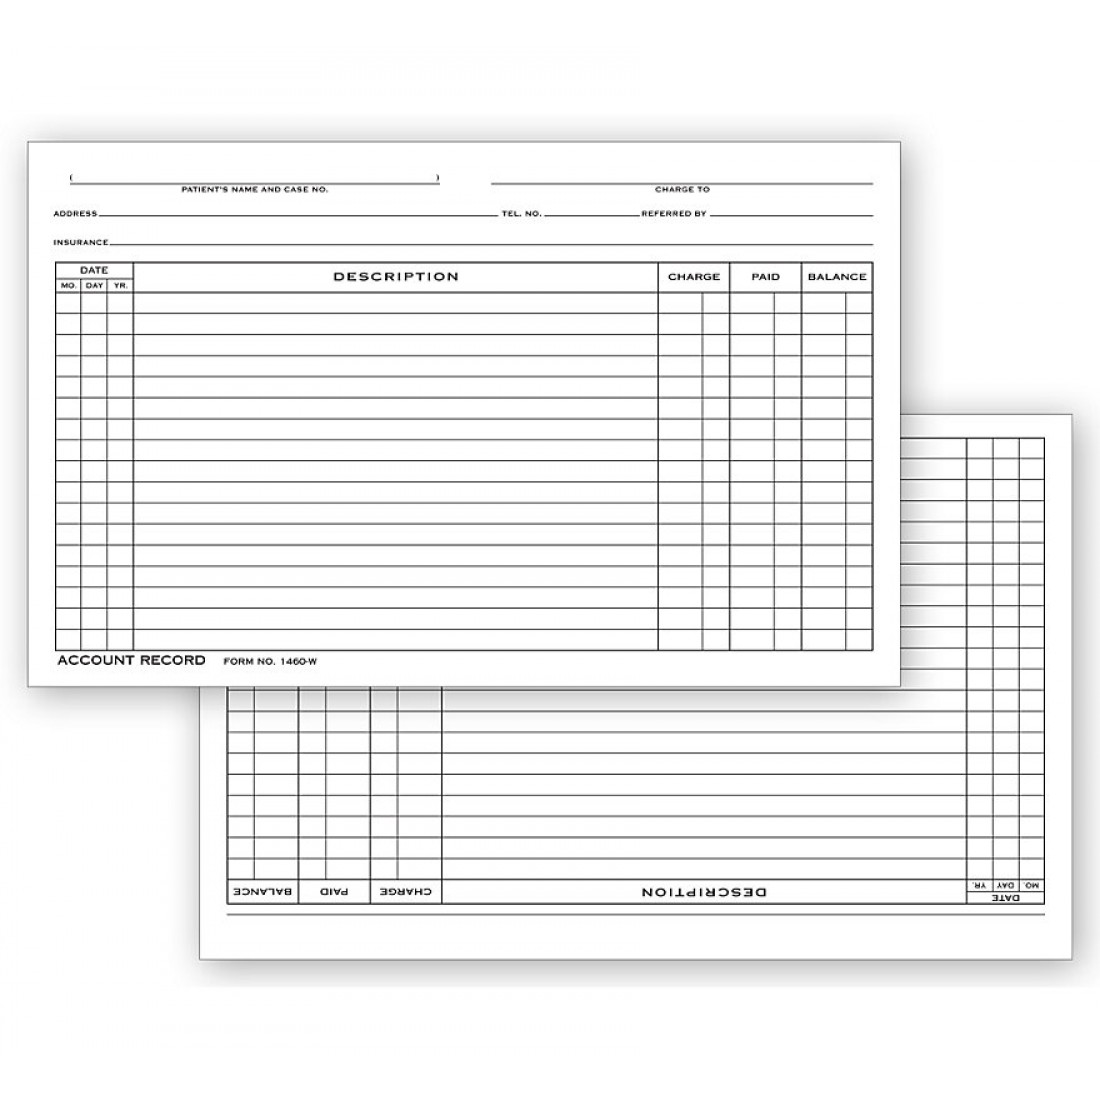 Account Record Billing Card, Single Entry